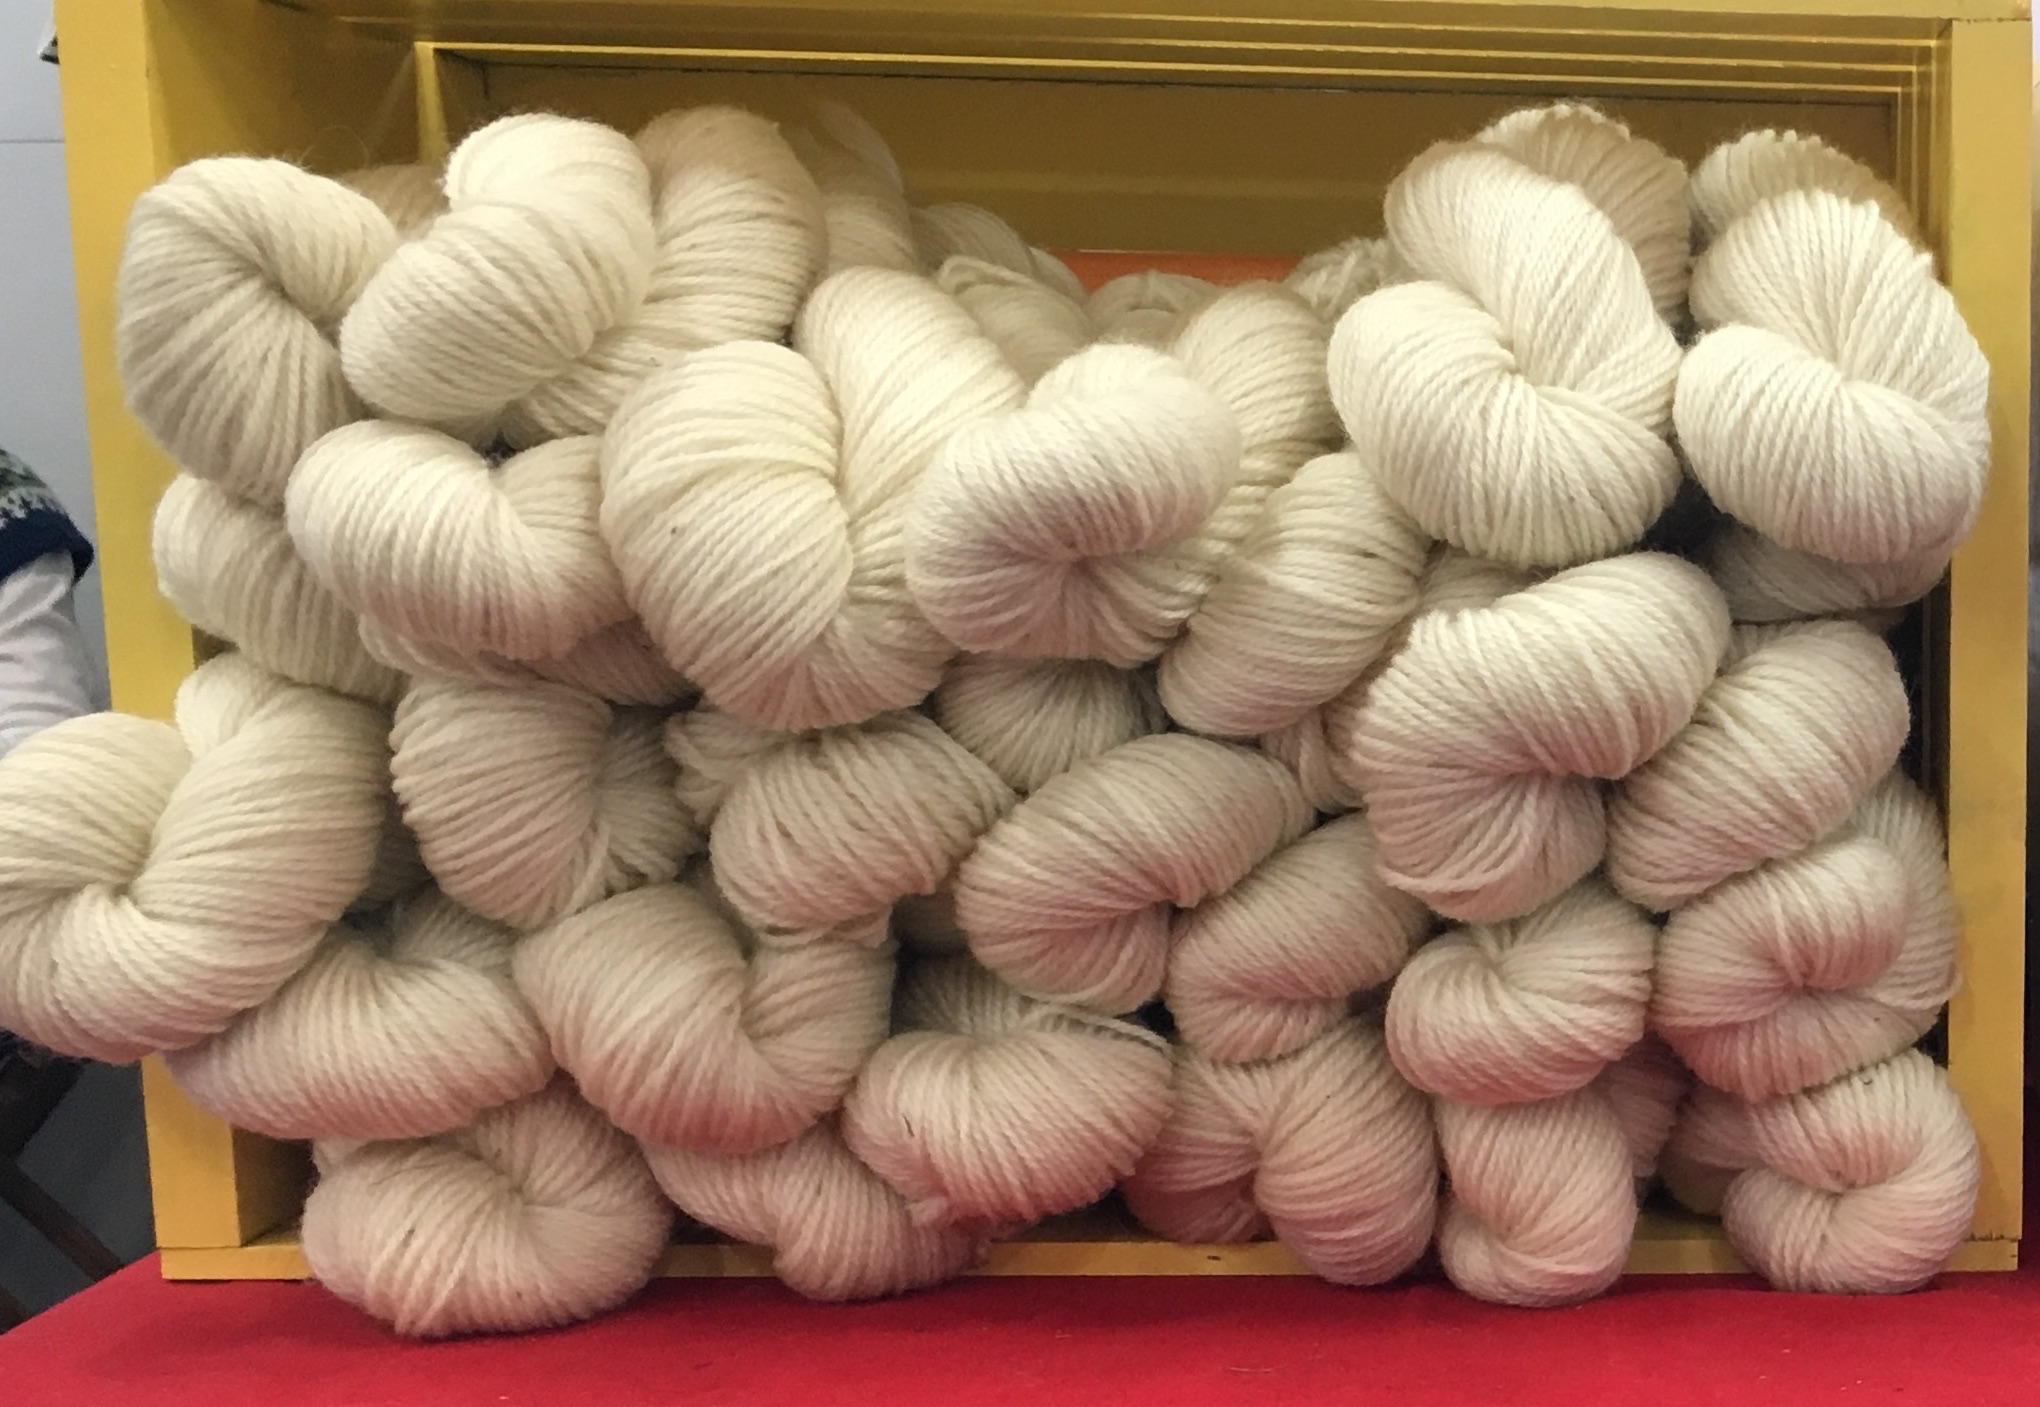 3-Ply Worsted Yarn - White